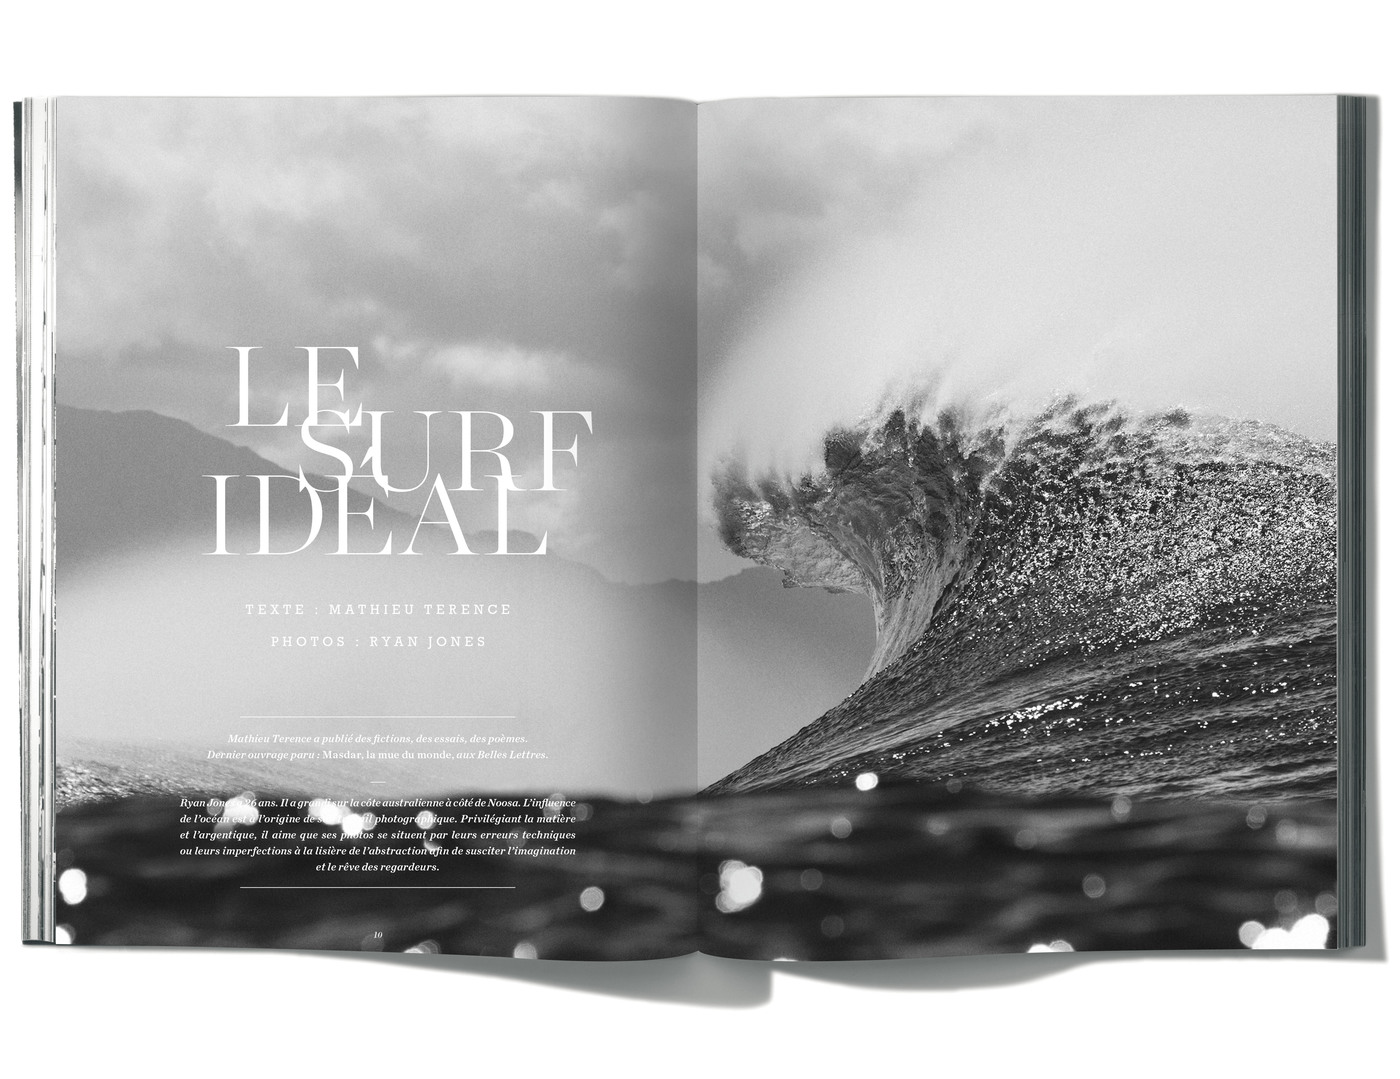 Texte de Mathieu Terence, Photographies de Ryan Jones, Le Surf Ideal